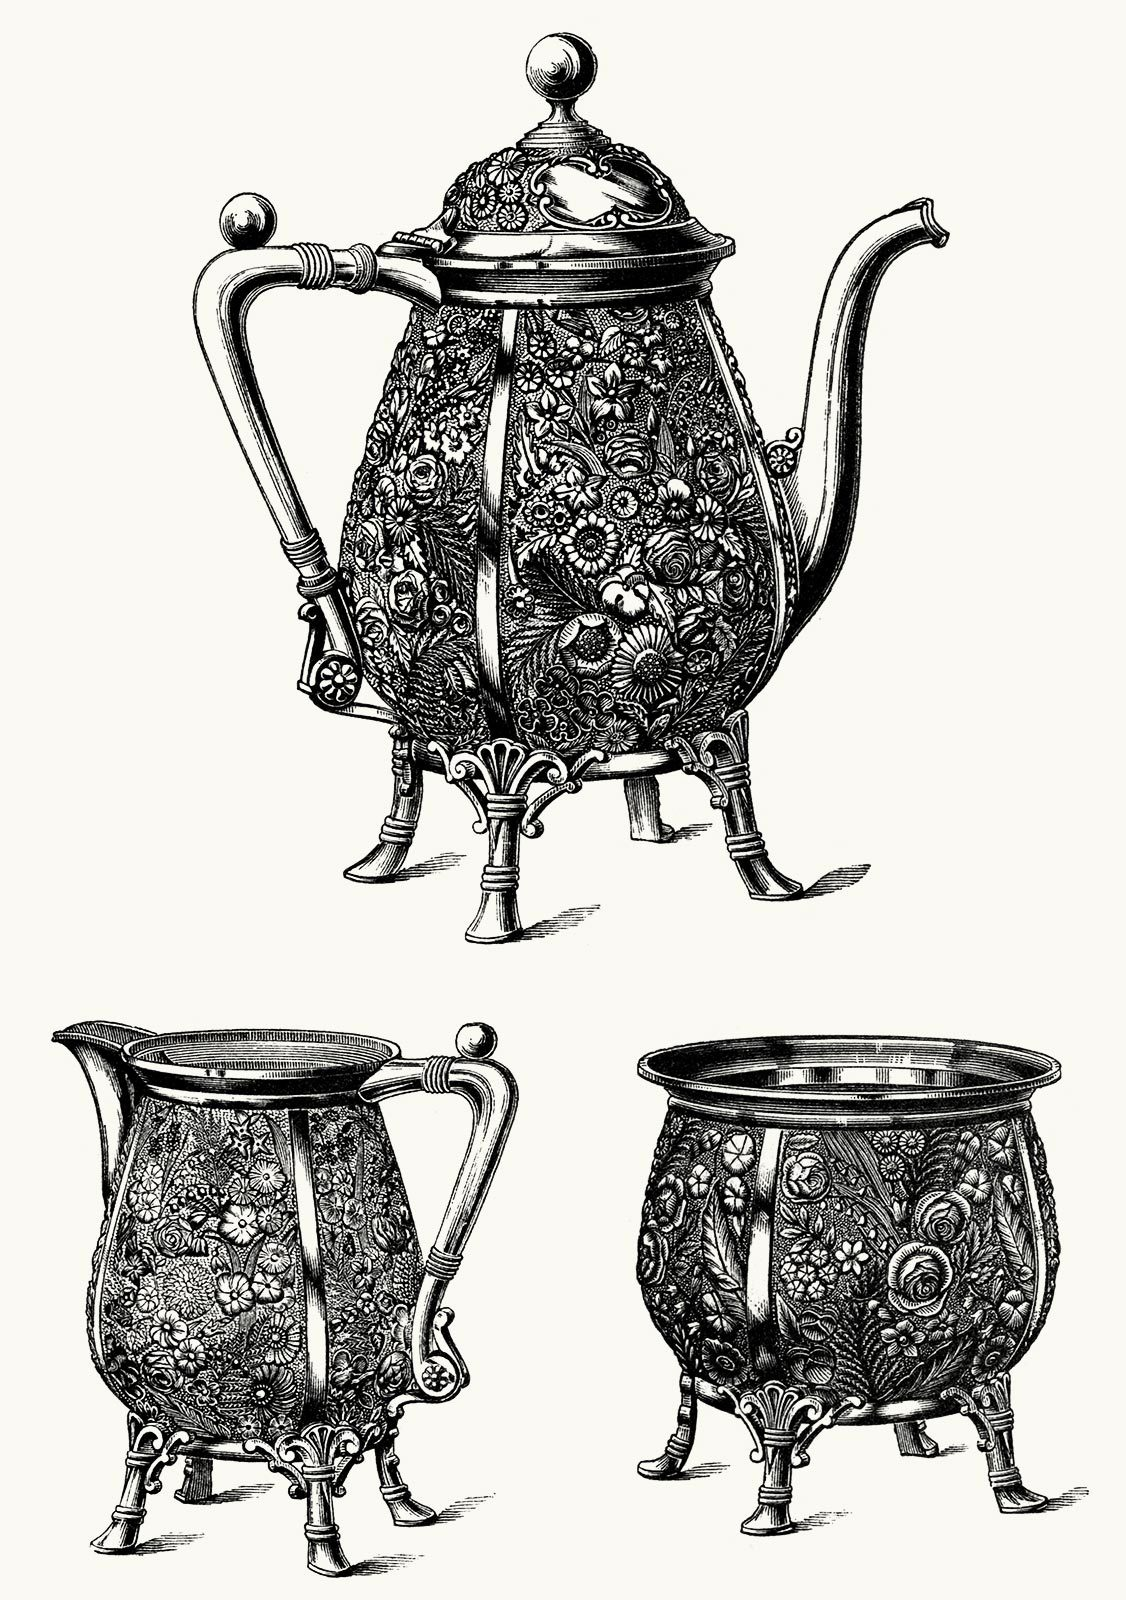 oldbookillustrations:  Pot, pitcher, and bowl - repoussé silver. From The great Centennial exhibition critically described and illustrated, by Phillip T. Sandhurst, Philadelphia and Chicago, circa 1876. (Source: archive.org)